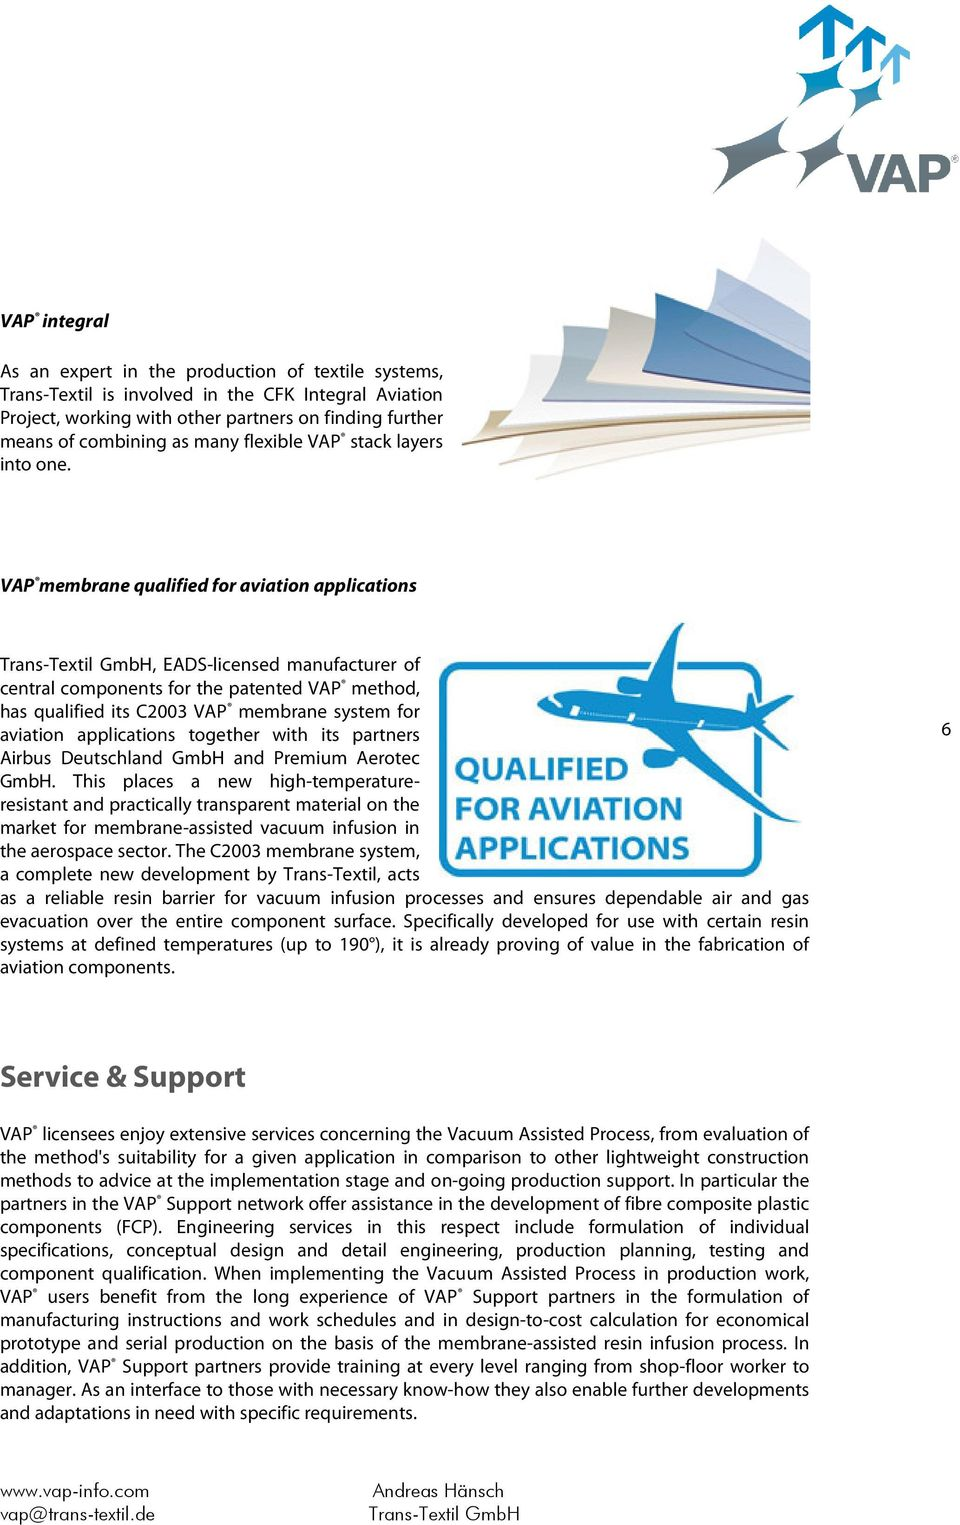 VAP membrane qualified for aviation applications, EADS-licensed manufacturer of central components for the patented VAP method, has qualified its C2003 VAP membrane system for aviation applications